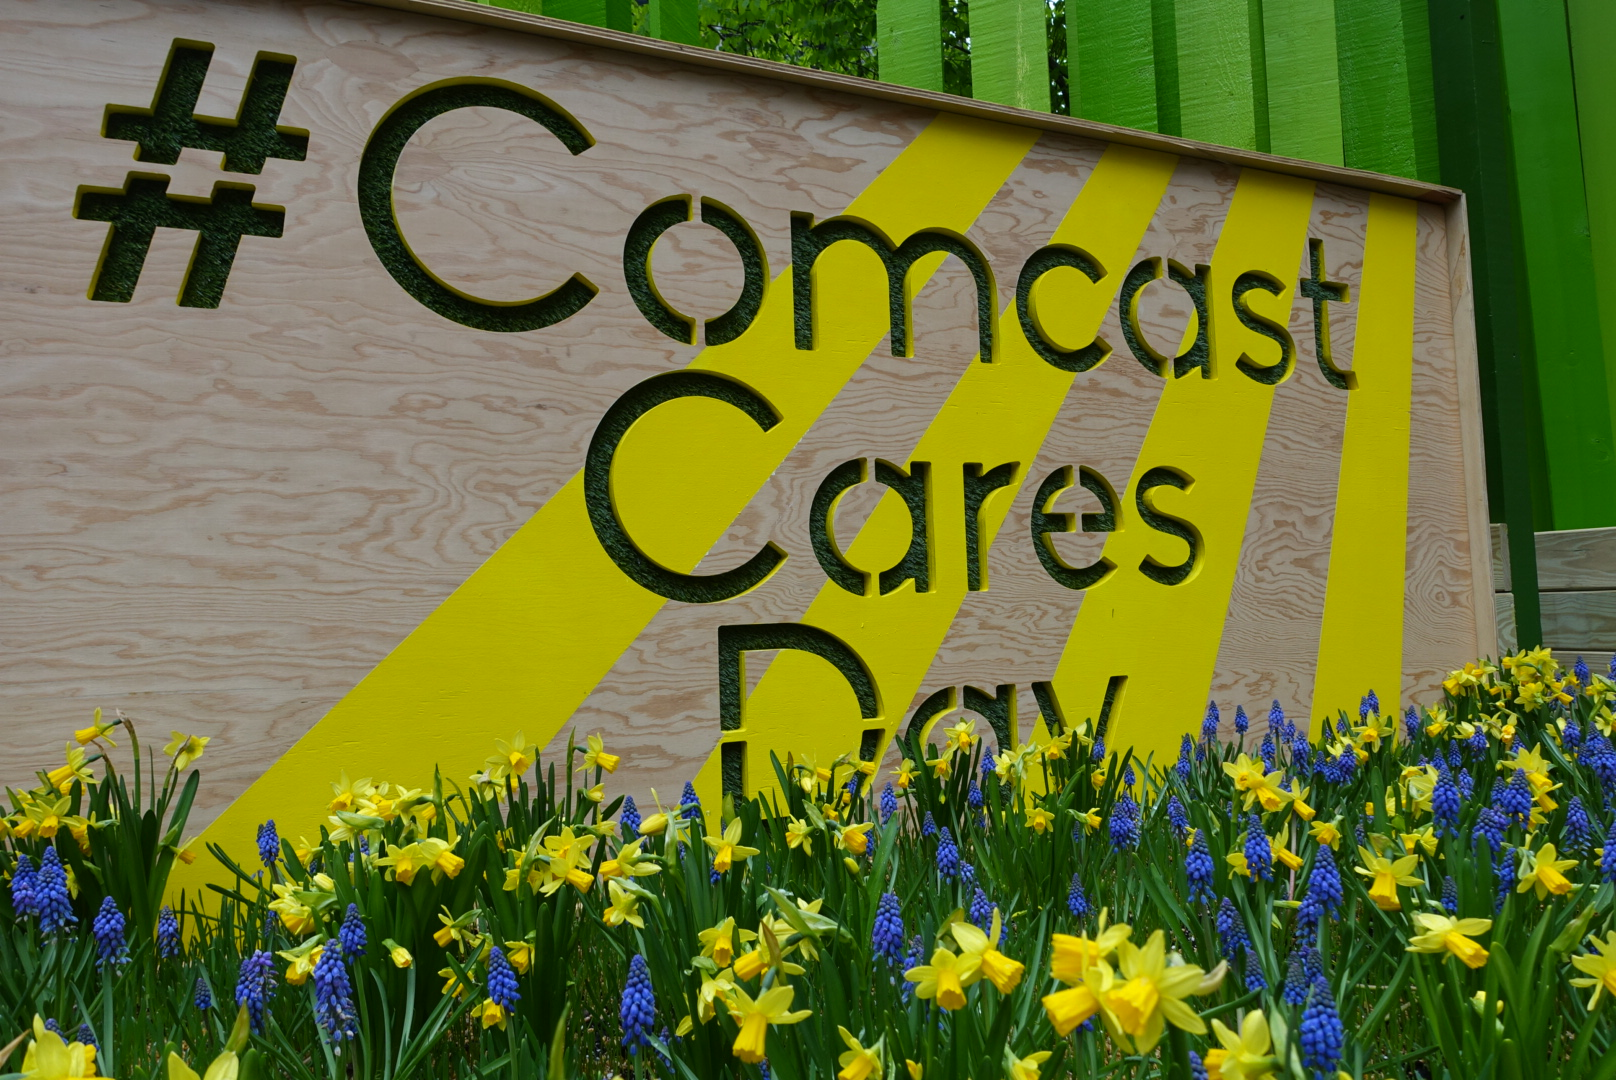 Comcast Cares Day